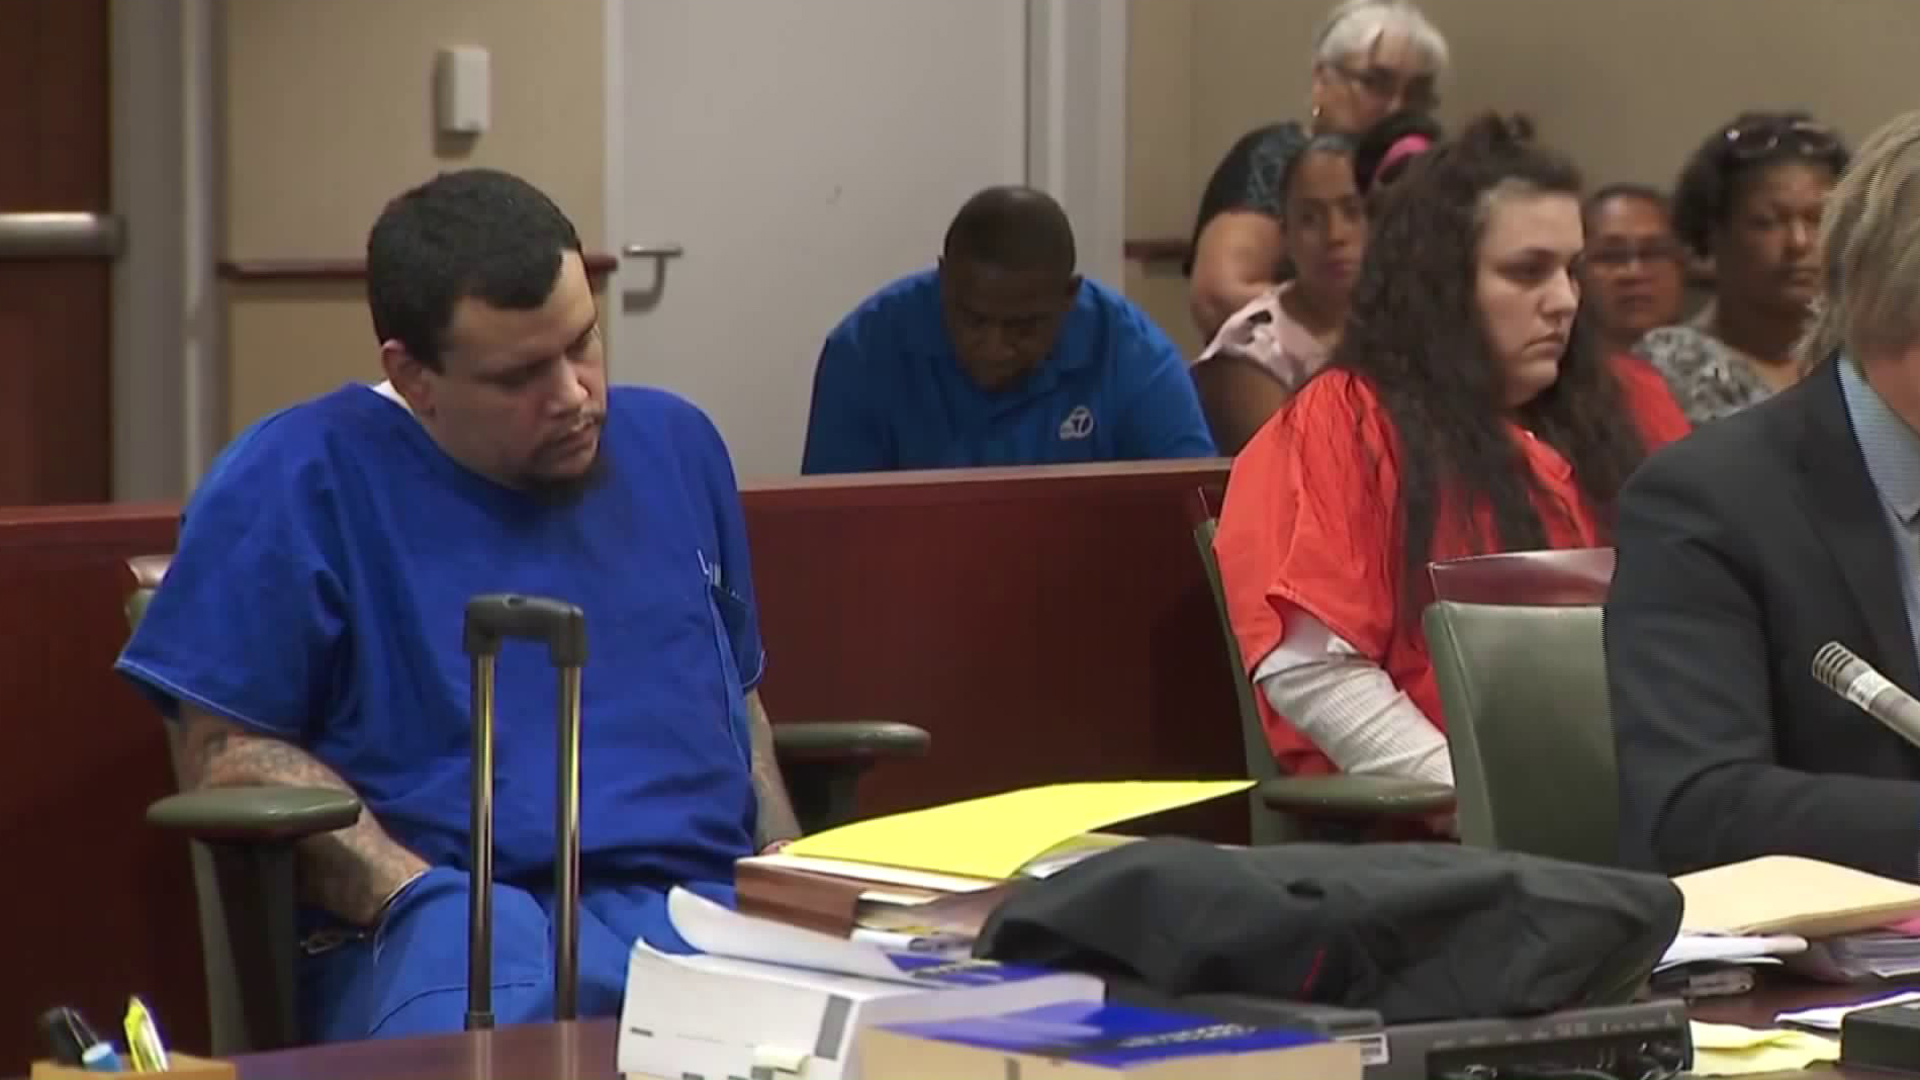 Kareem Ernesto Leiva, left, and Heather Maxine Barron appear for their arraignment in a Lancaster courtroom on Oct. 3, 2018. (Credit: KTLA)